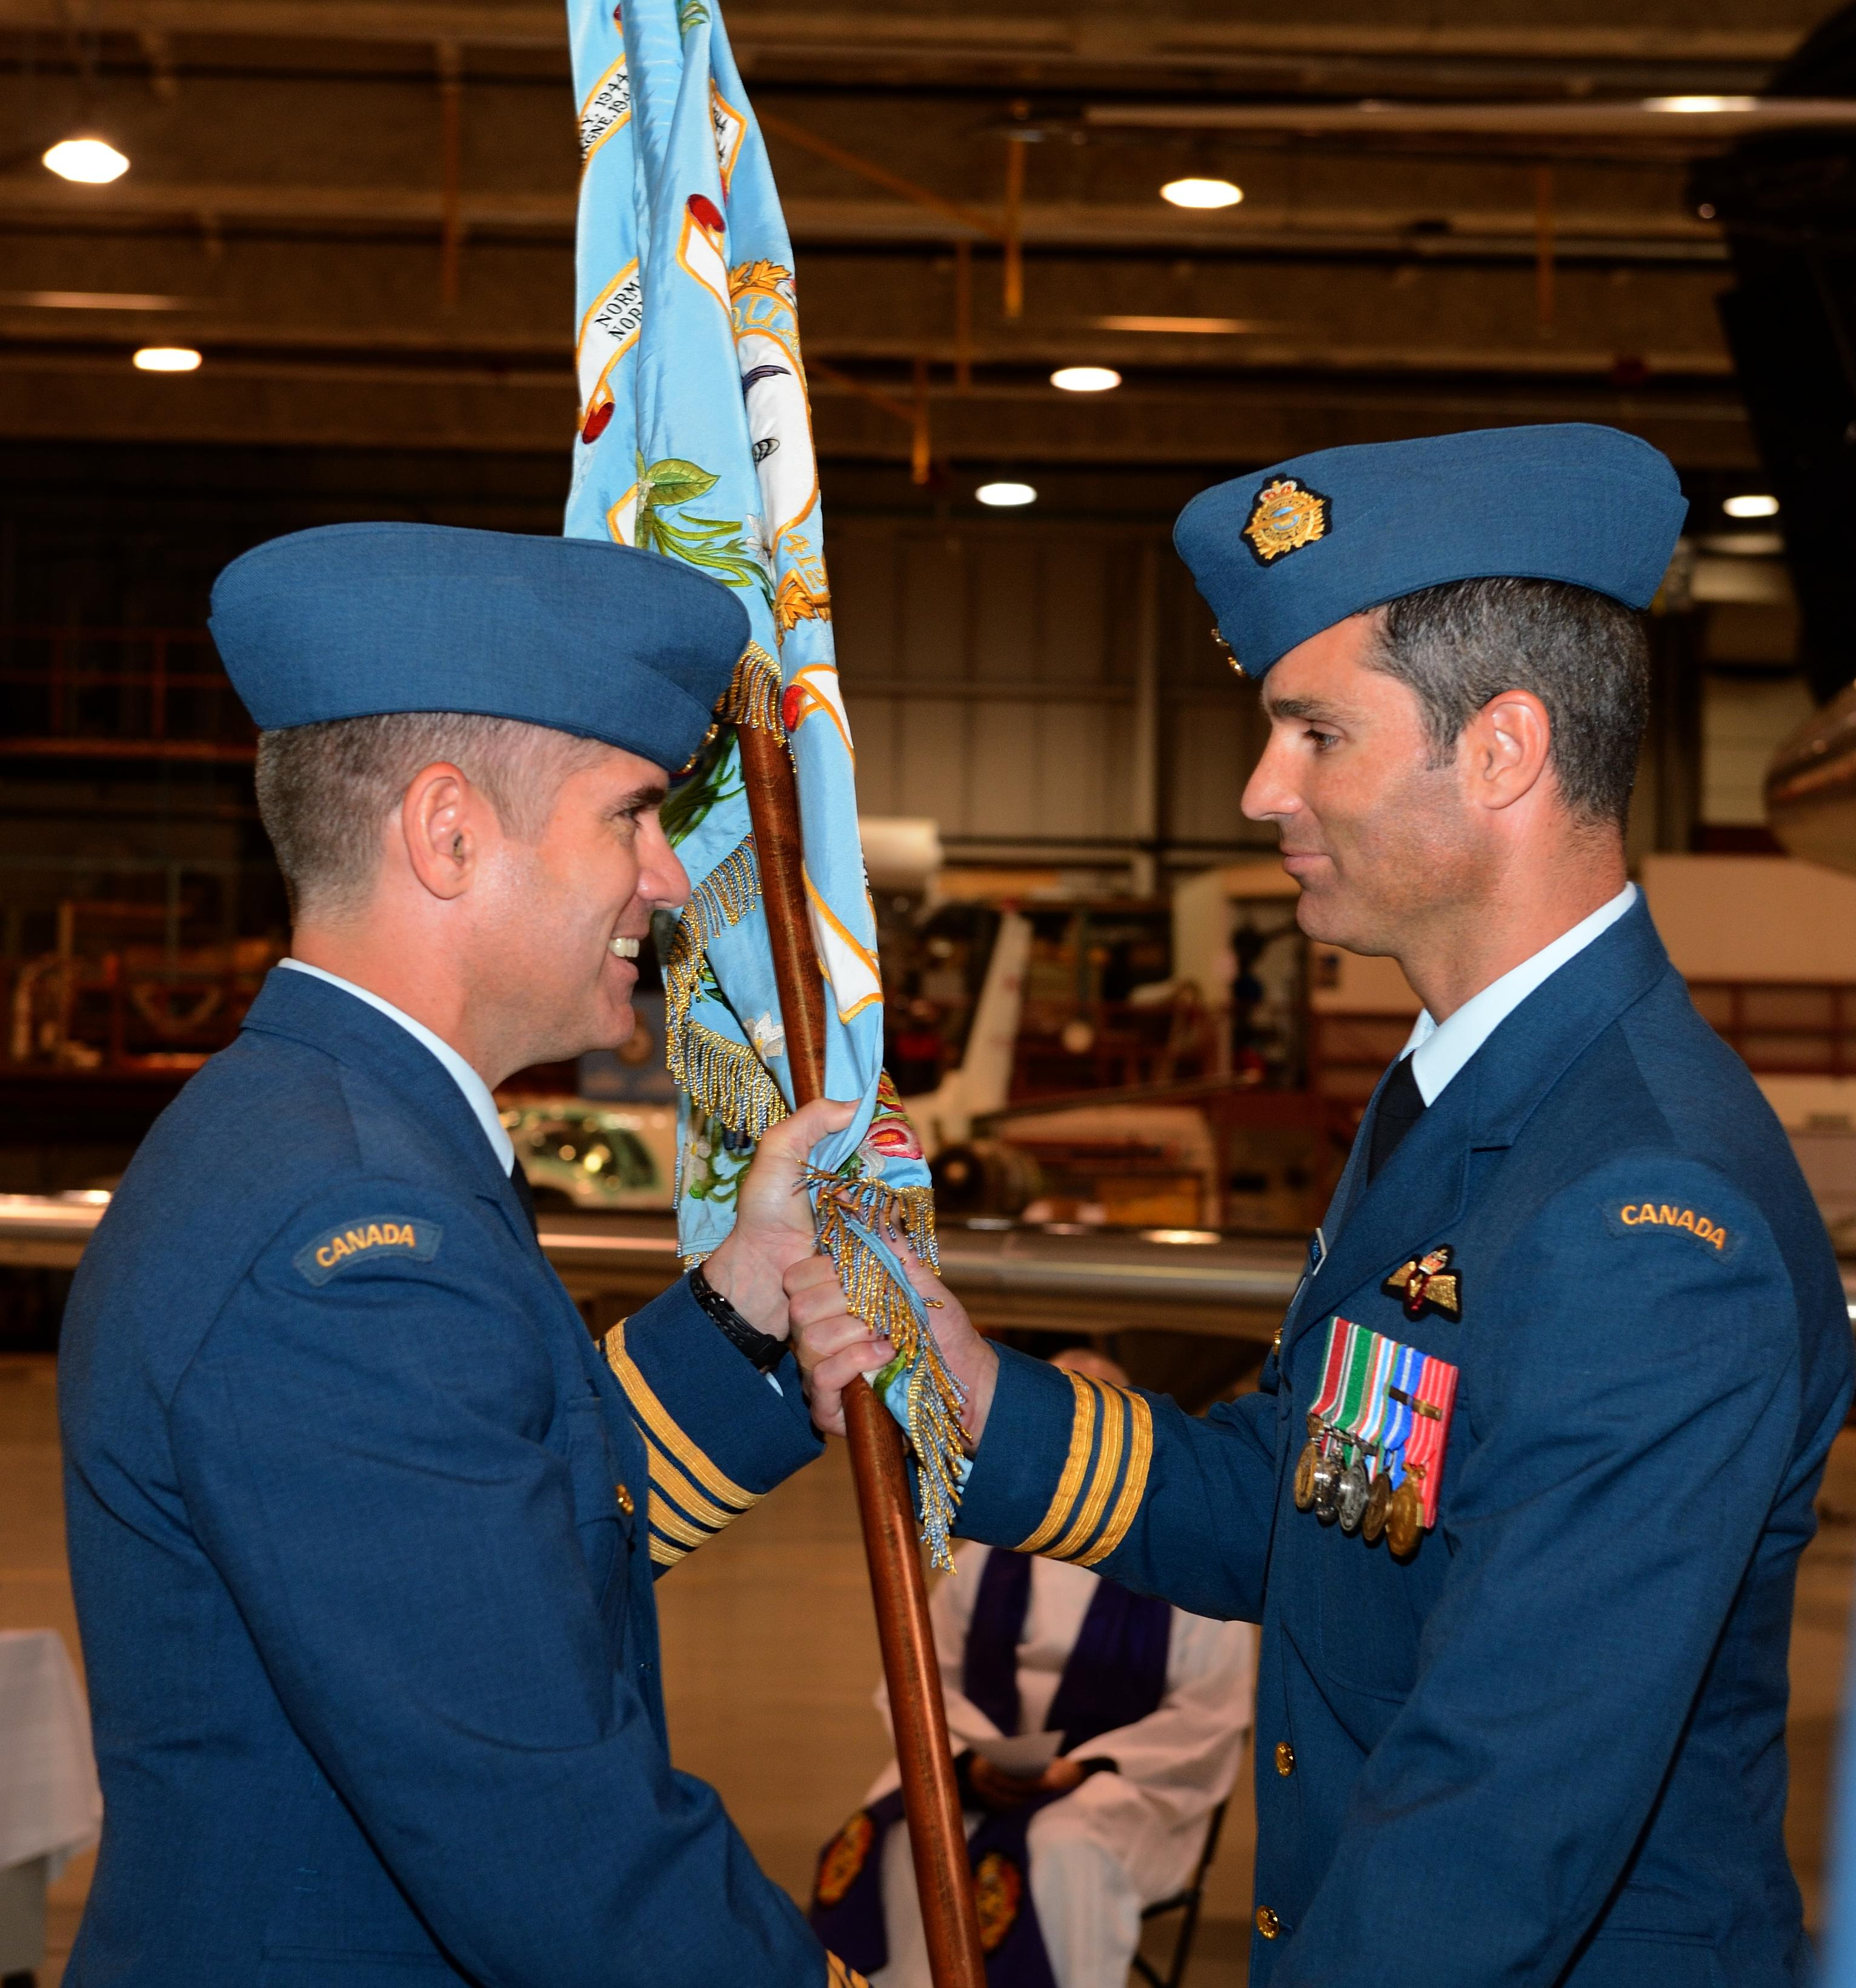 Passing of the Colours by Col Sean Friday to LCol Michael Thornley.